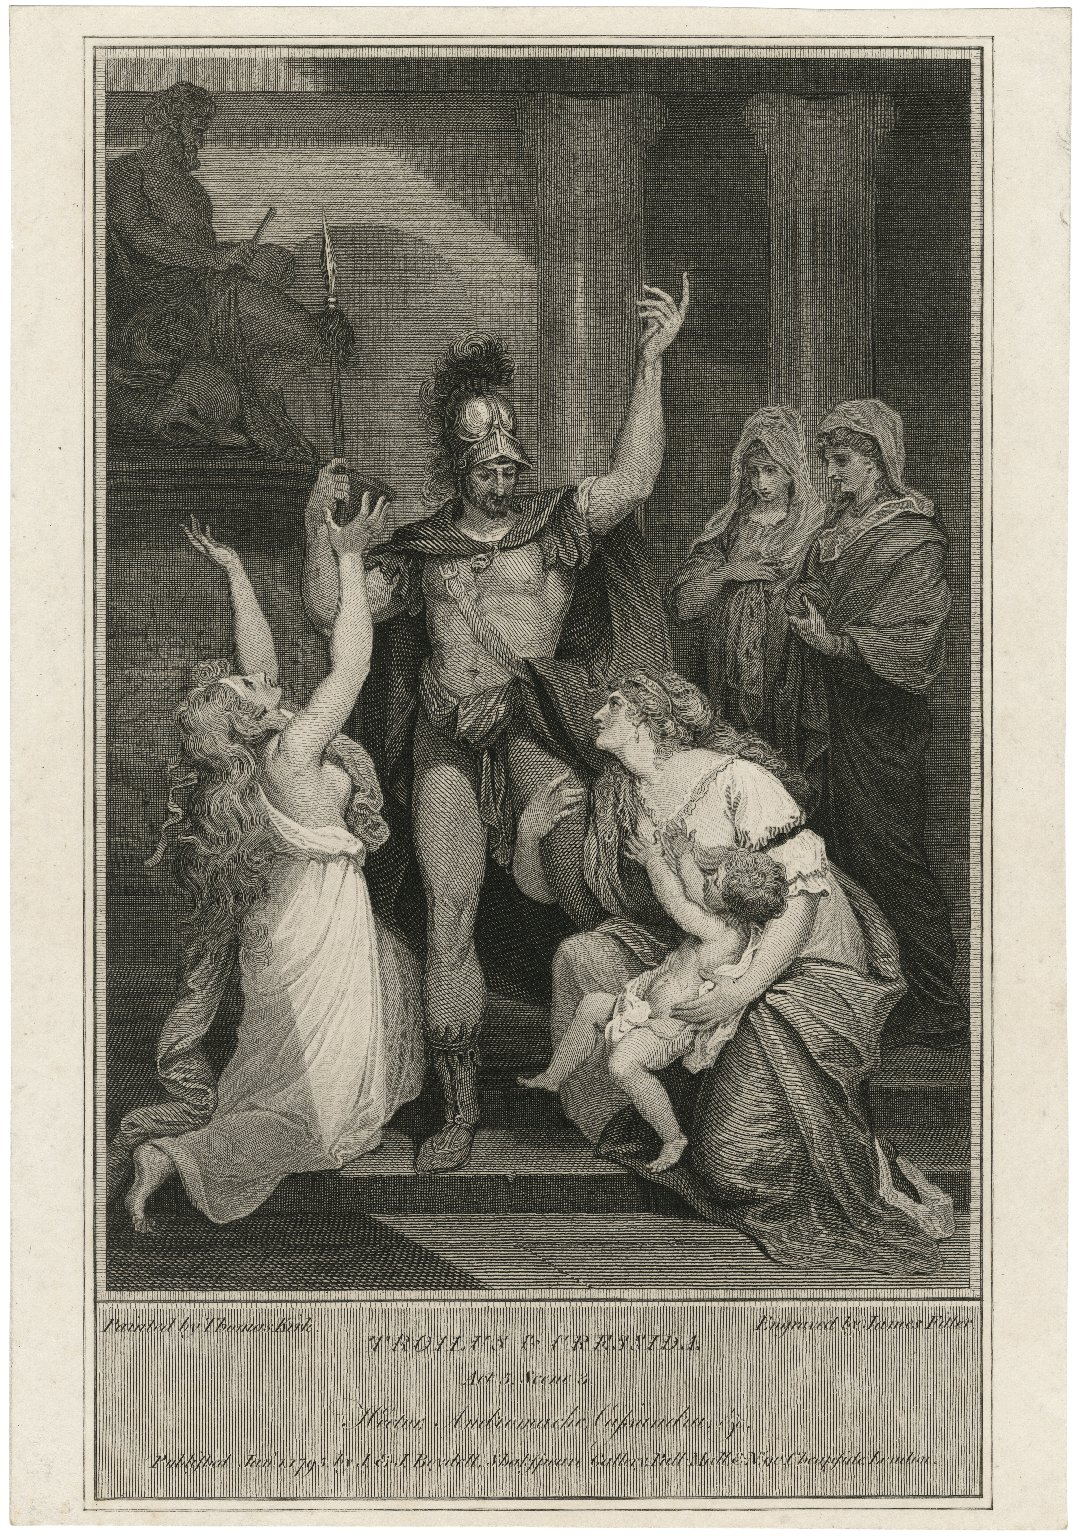 Troilus & Cressida, act 5, sc. 3, Hector, Andromache, Cassandra &c. [graphic] / painted by Thomas Kirk ; engraved by James Fitler.